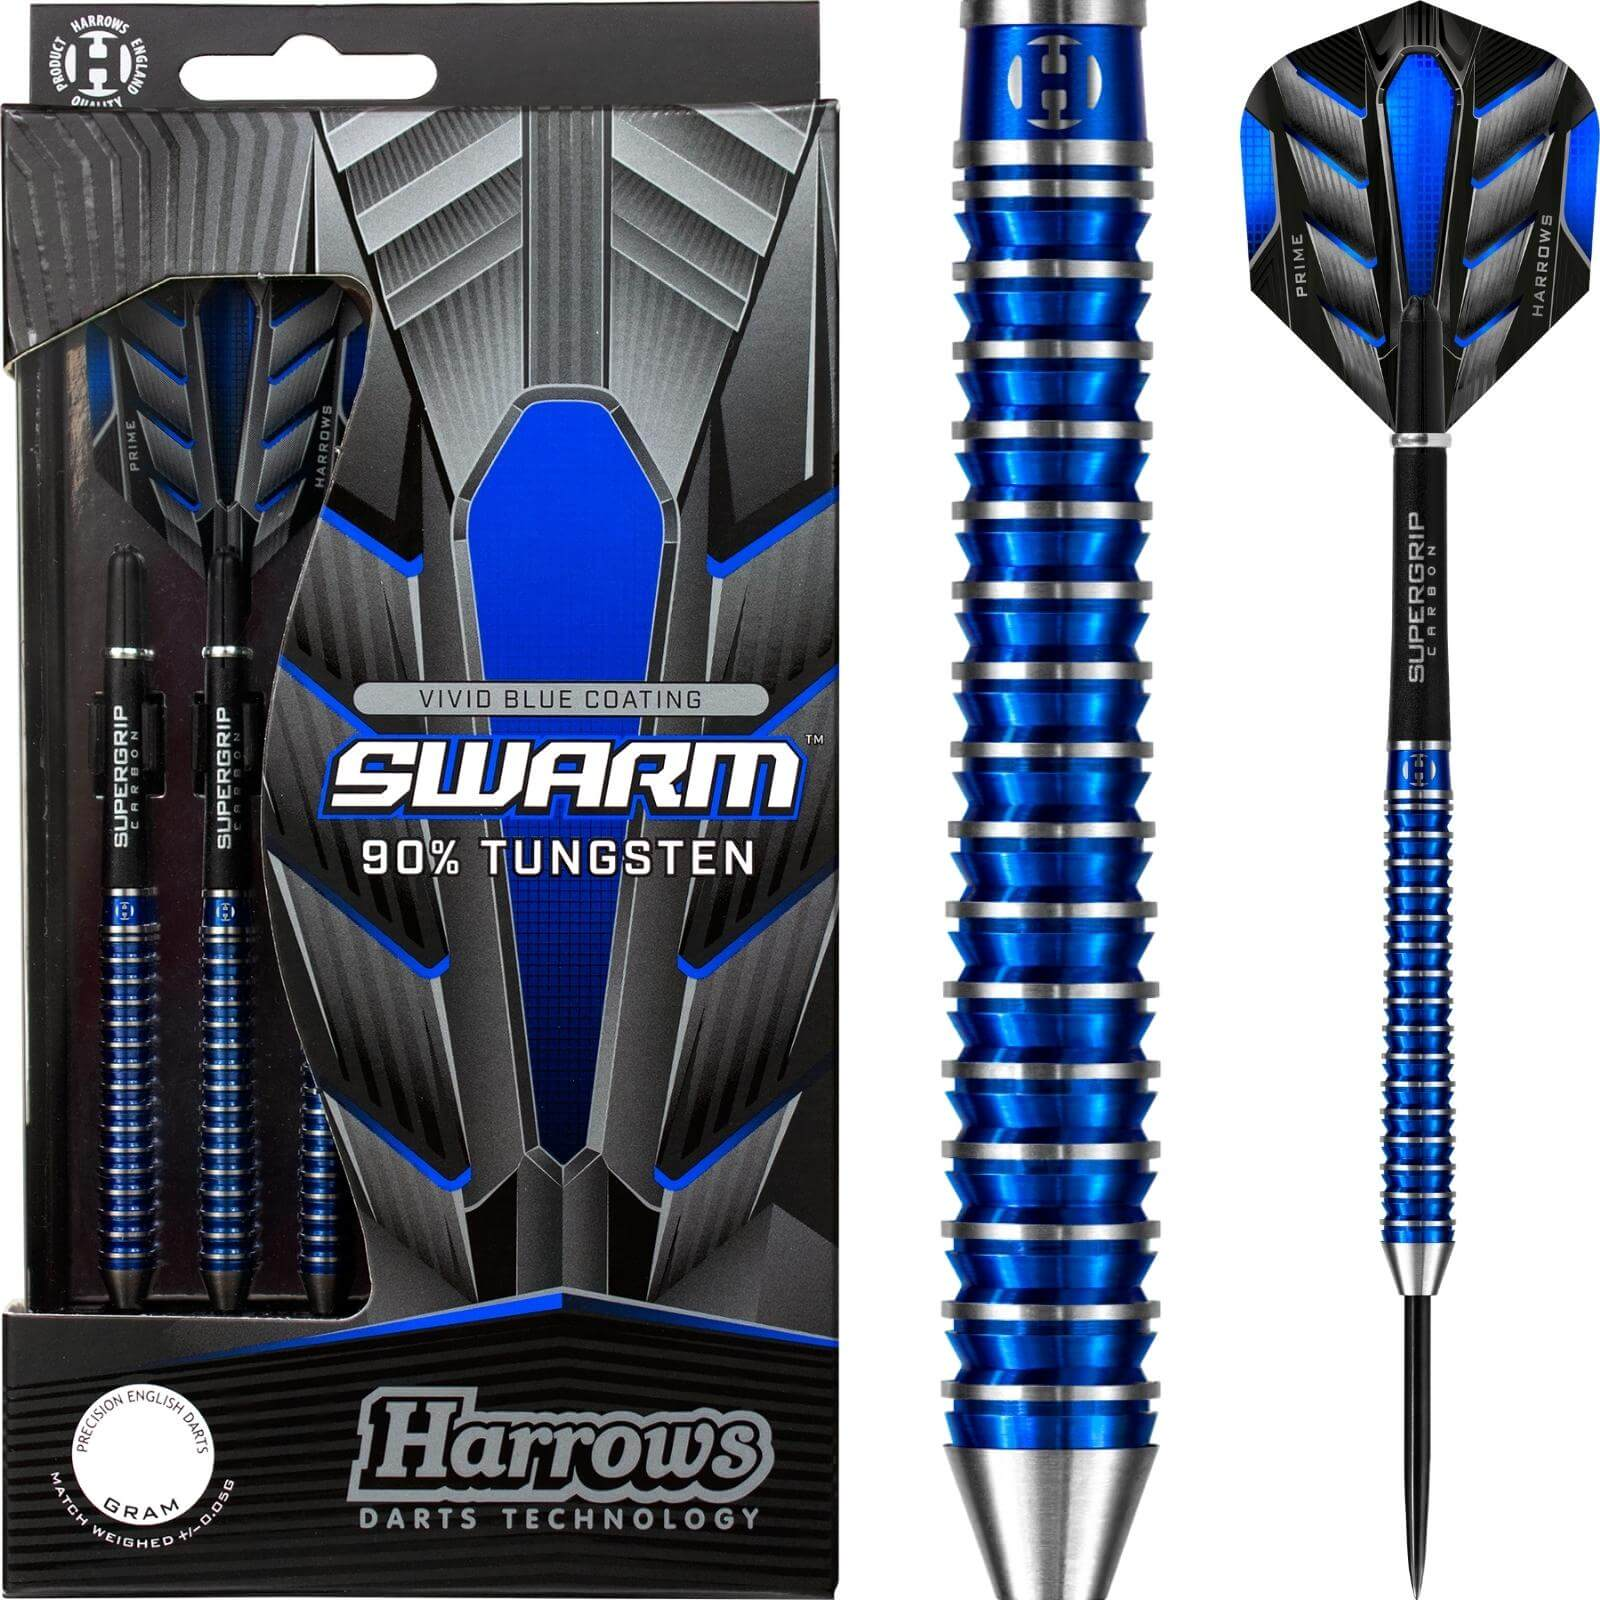 Darts - Harrows - Swarm Darts - Steel Tip - 90% Tungsten - 21g 22g 23g 24g 25g 26g